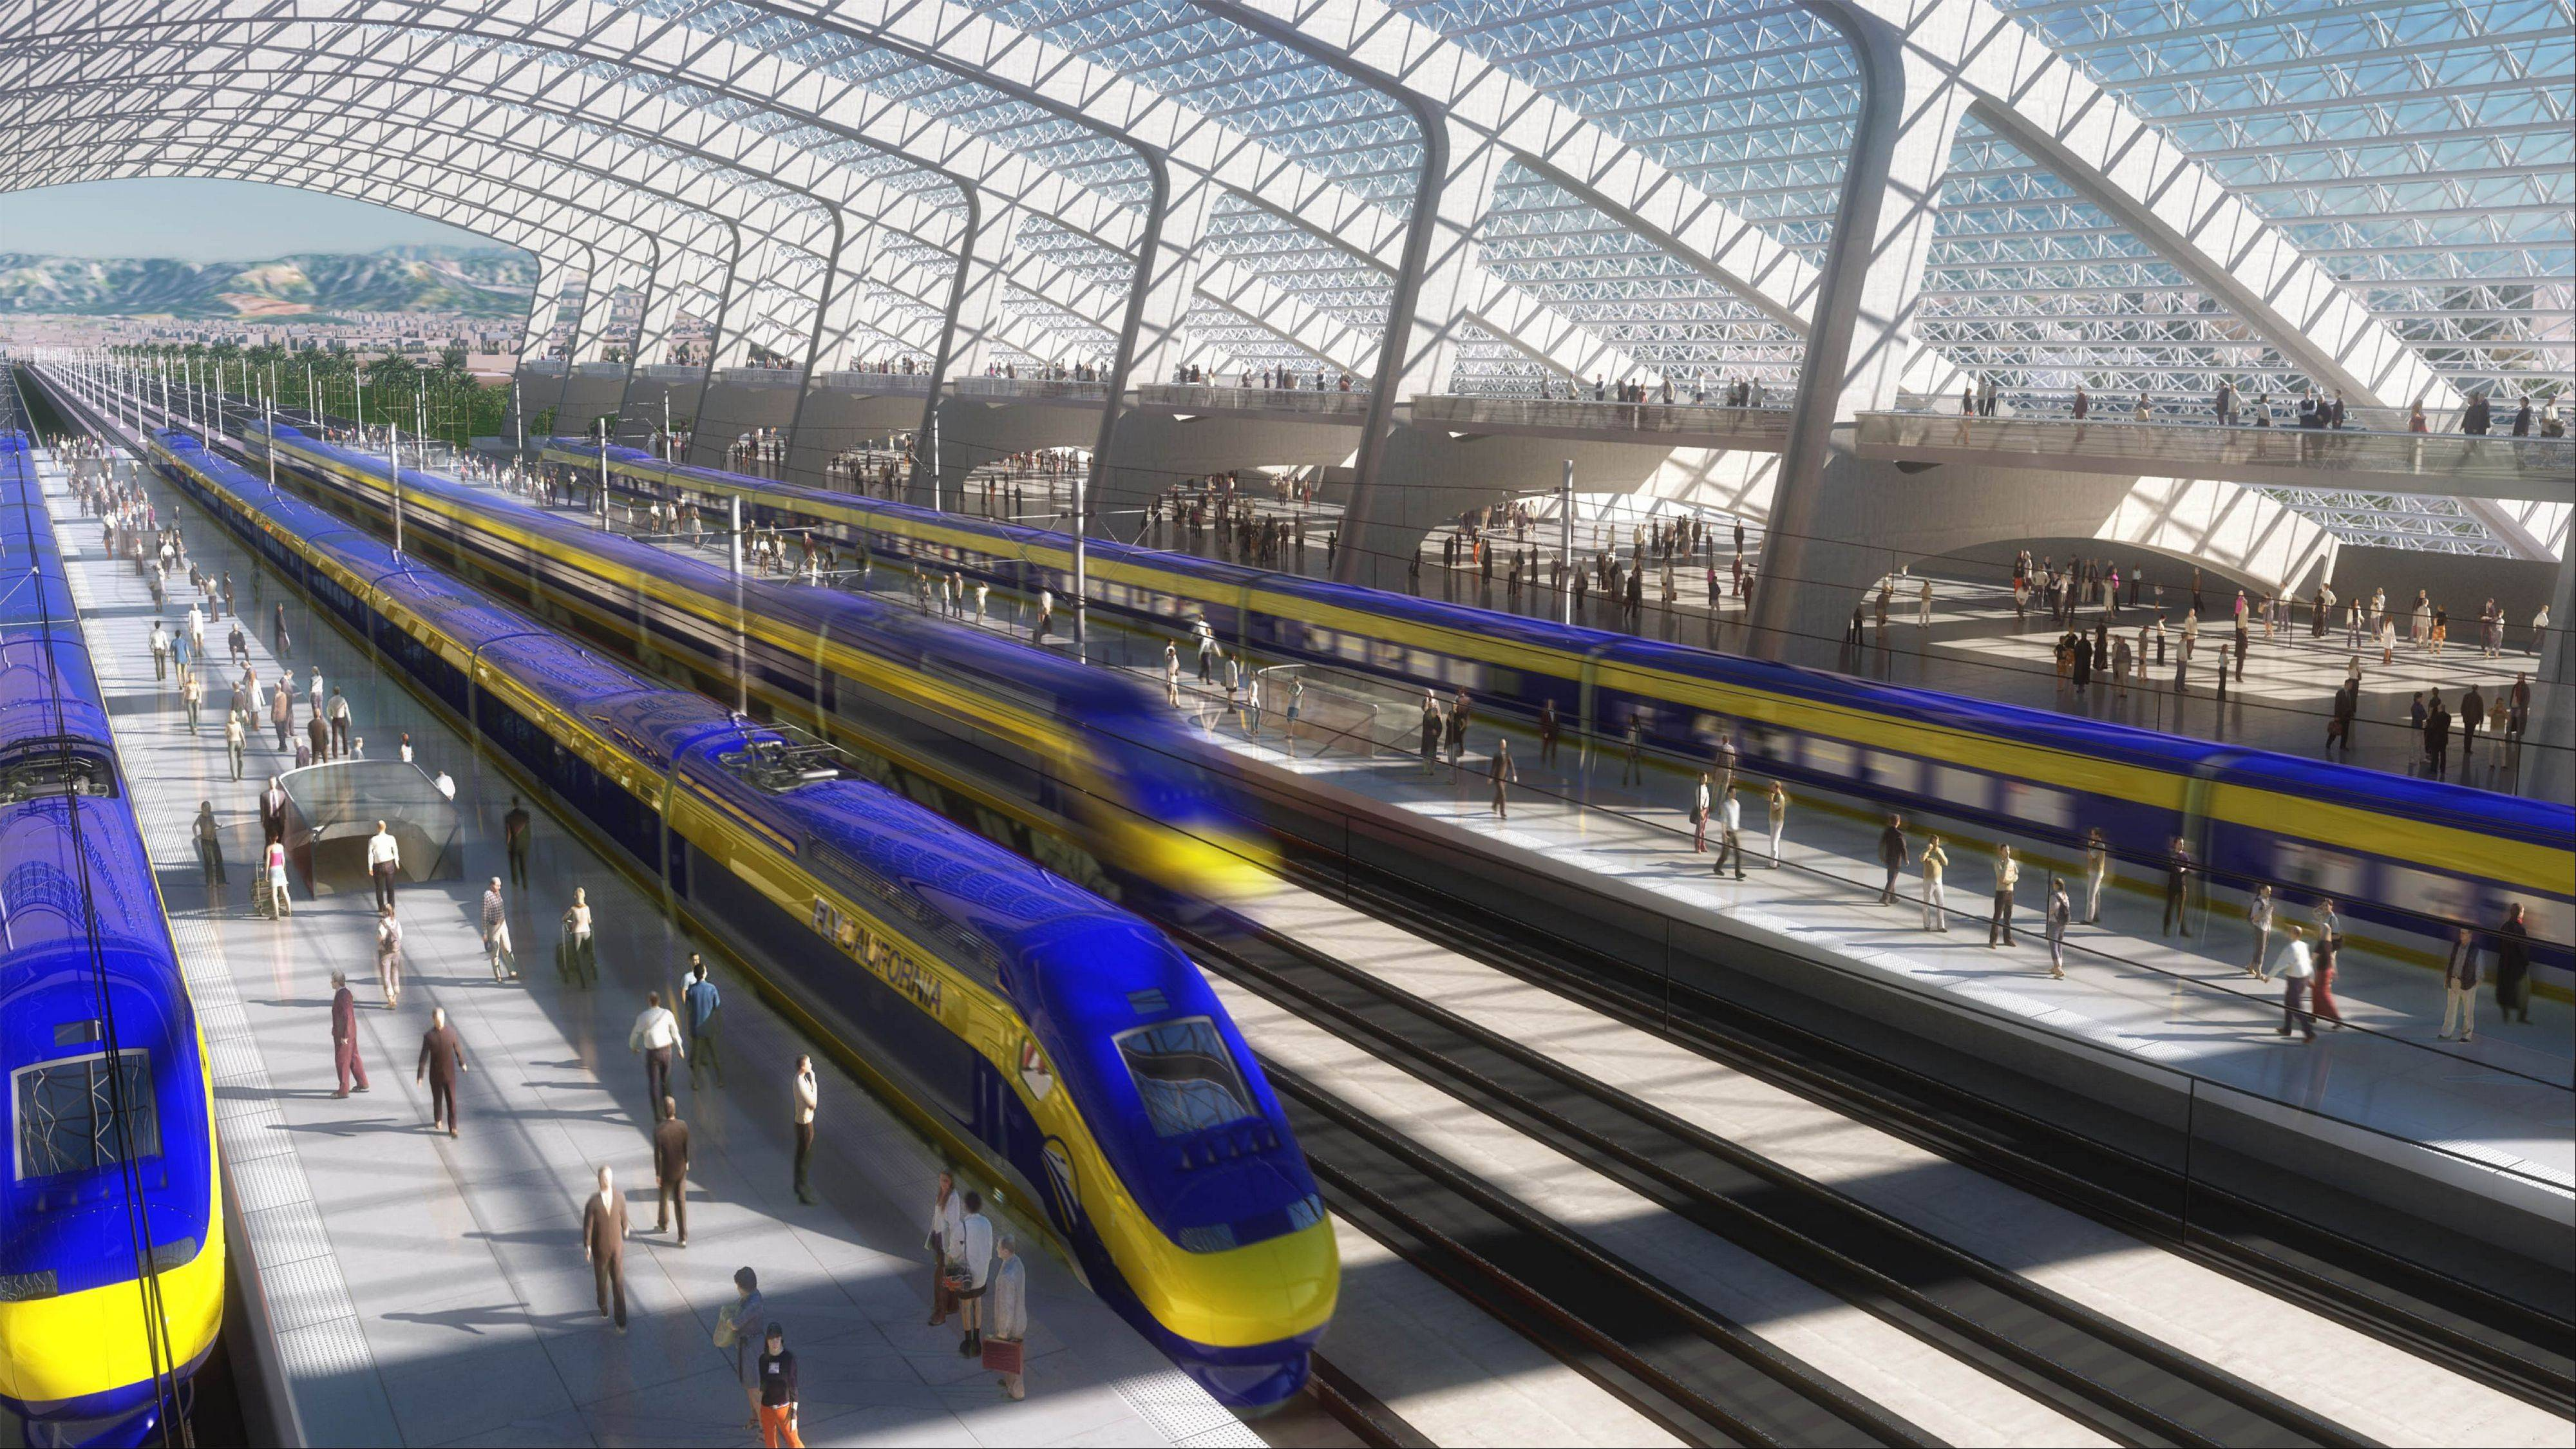 This is an artist's rendering of a high-speed train station designed for California's proposed system. Illinois high-speed rail efforts have taken a modest step forward recently with a new top speed of 110 mph over a short section of the Amtrak route between Chicago and St. Louis.